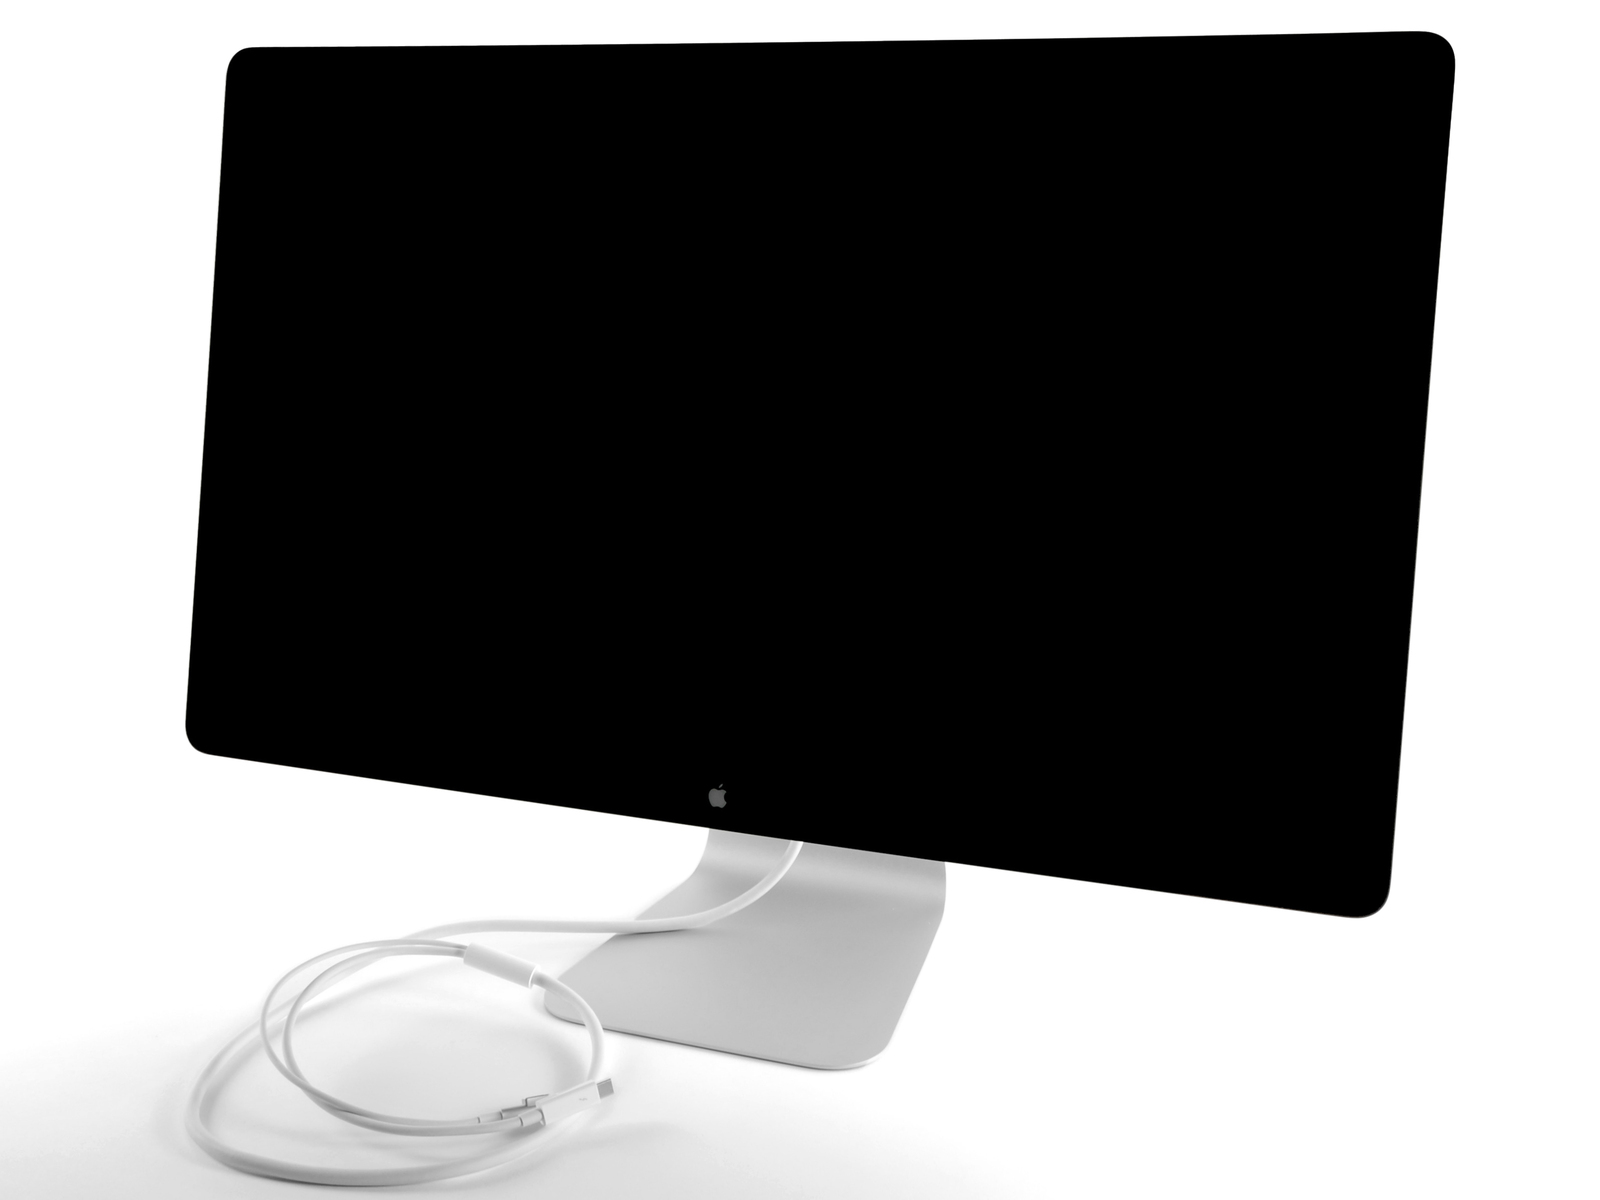 Apple Retires The Thunderbolt Display Without Announcing A